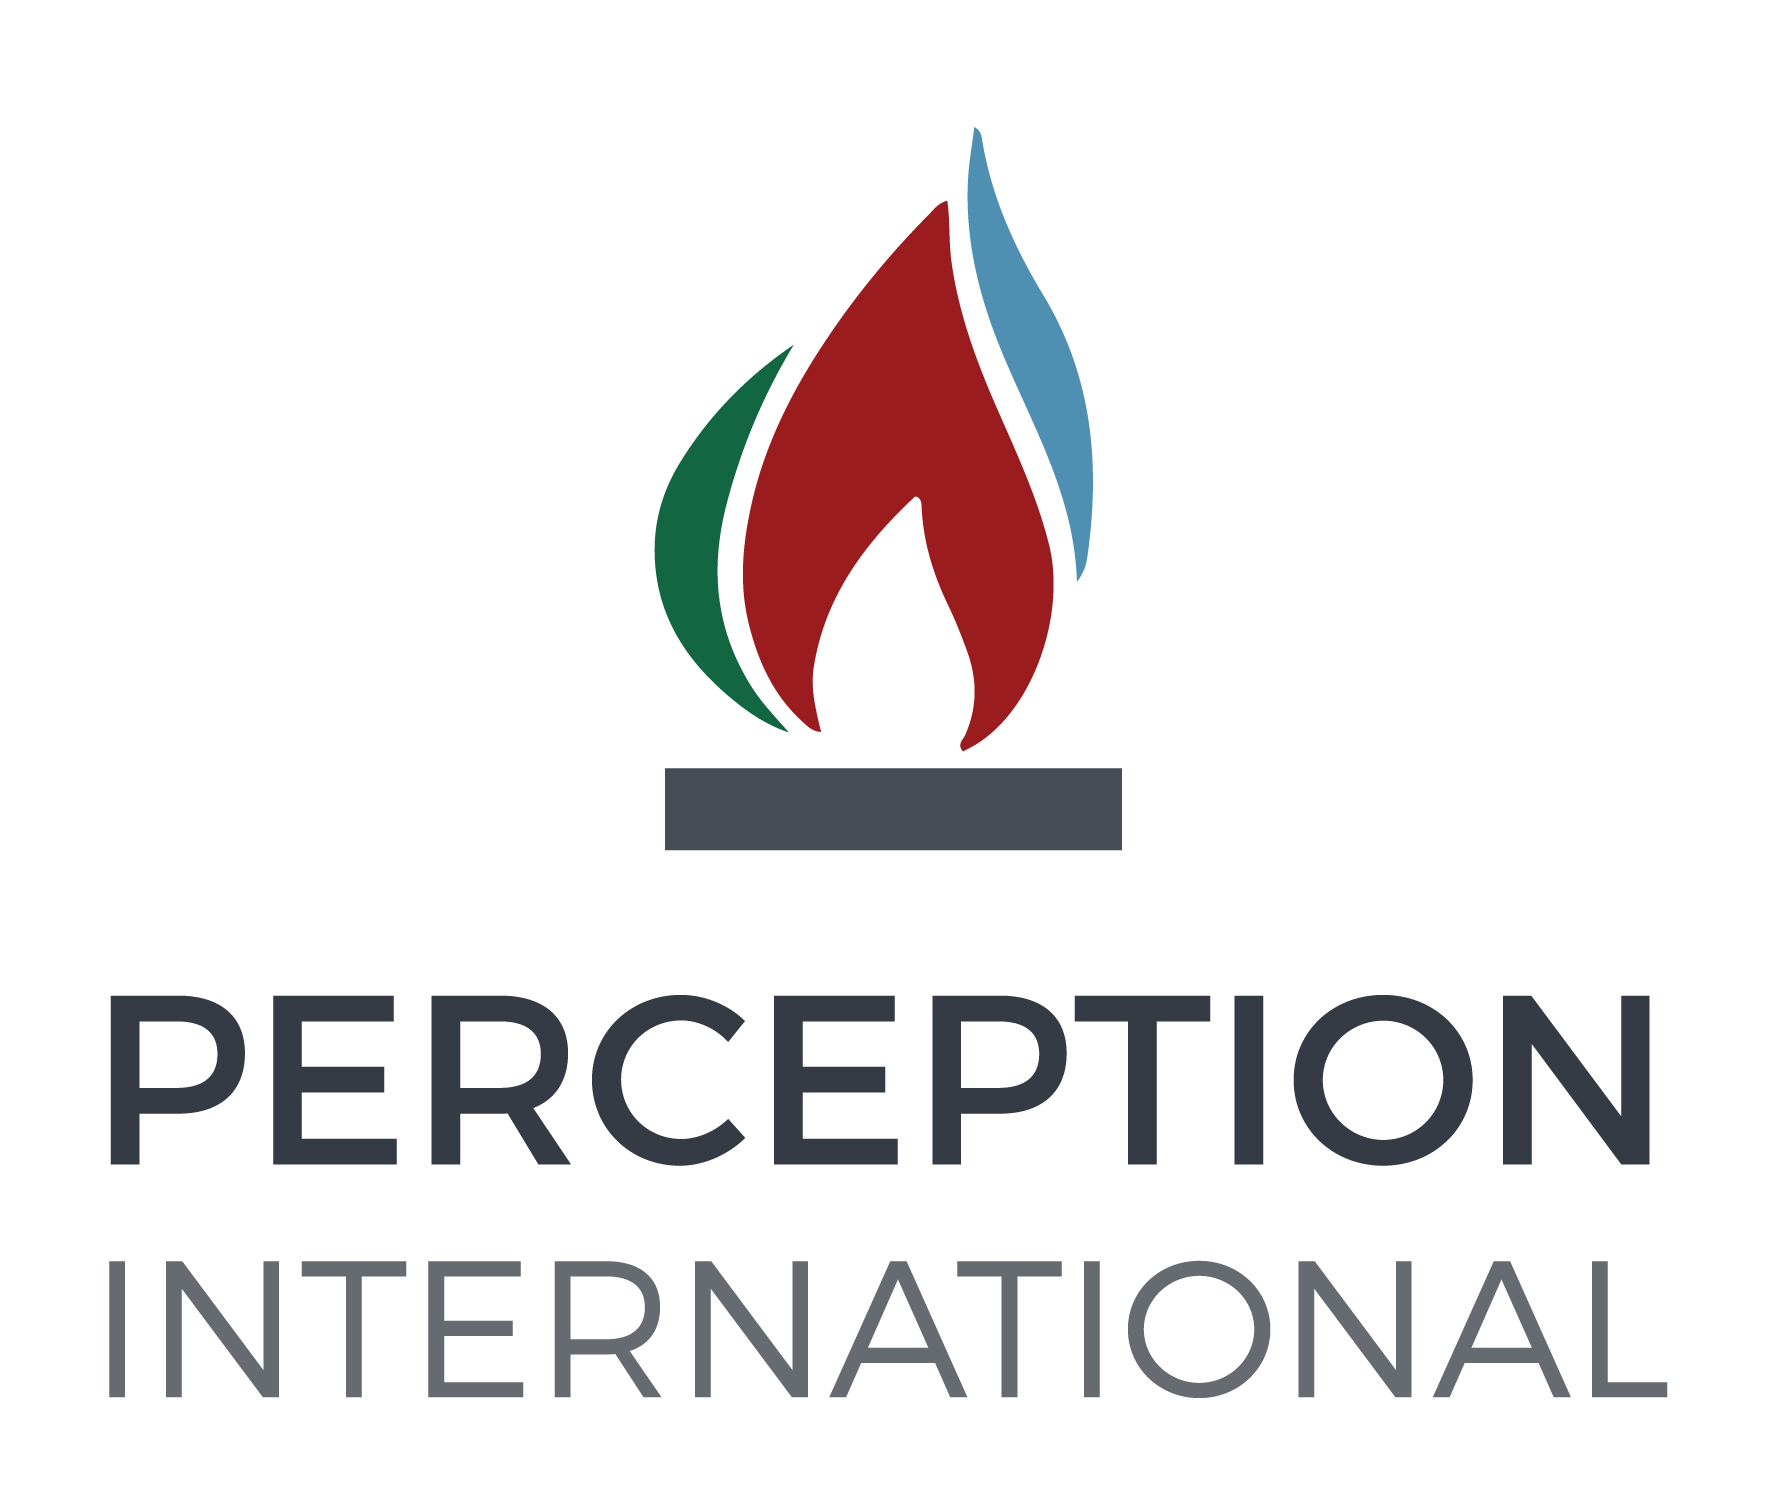 Perception International